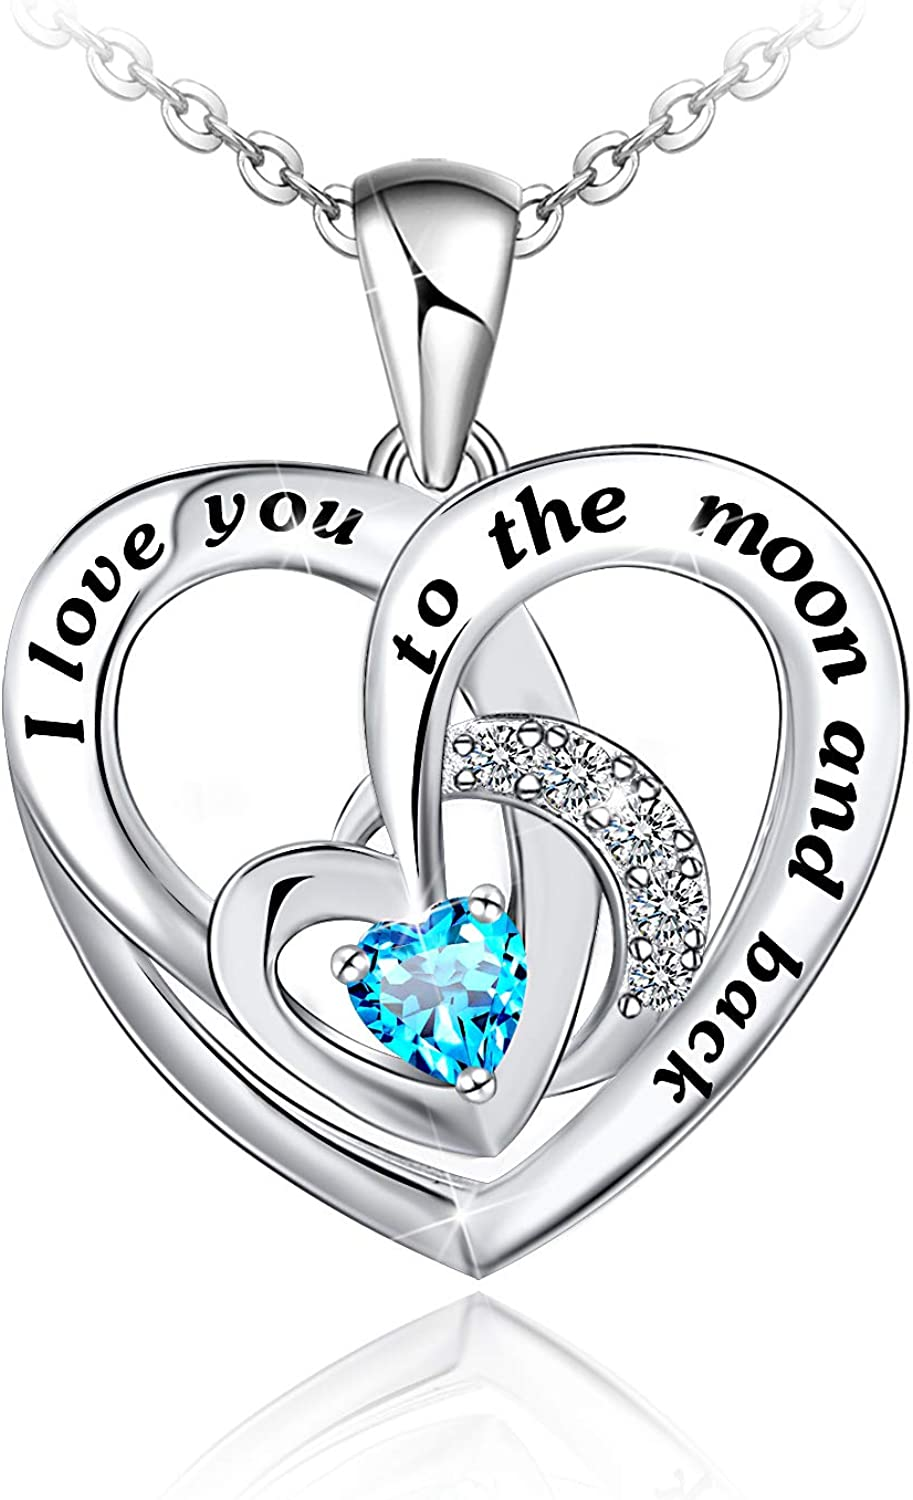 My Valentine Inside Decorated Heart Sterling Silver Charm or Pendant.